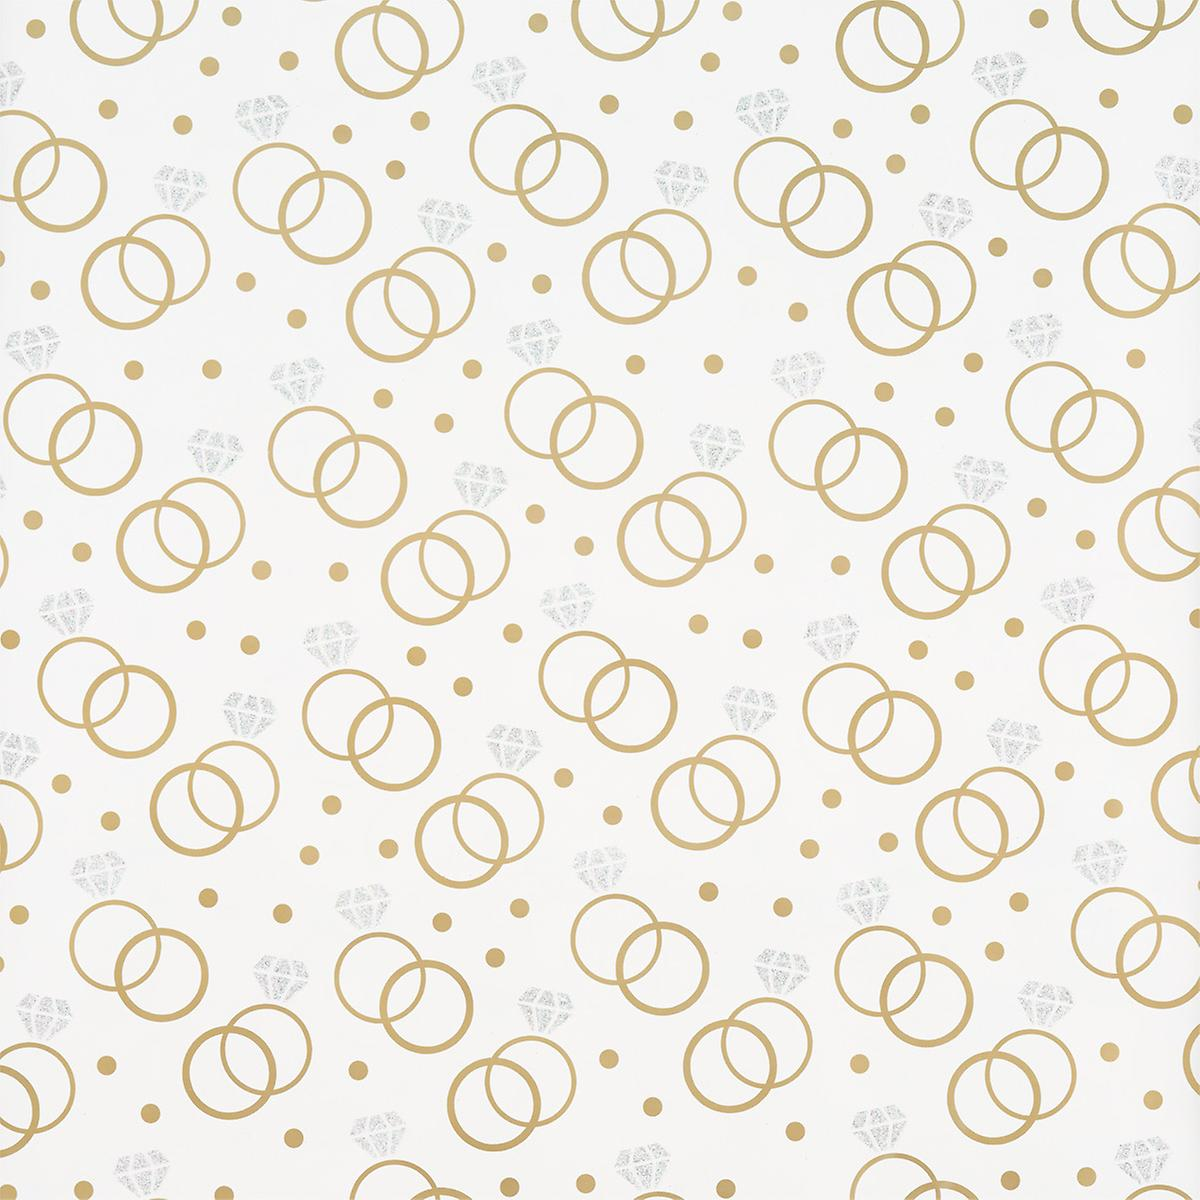 White & Gold Glitter Wedding Rings Wrapping Paper